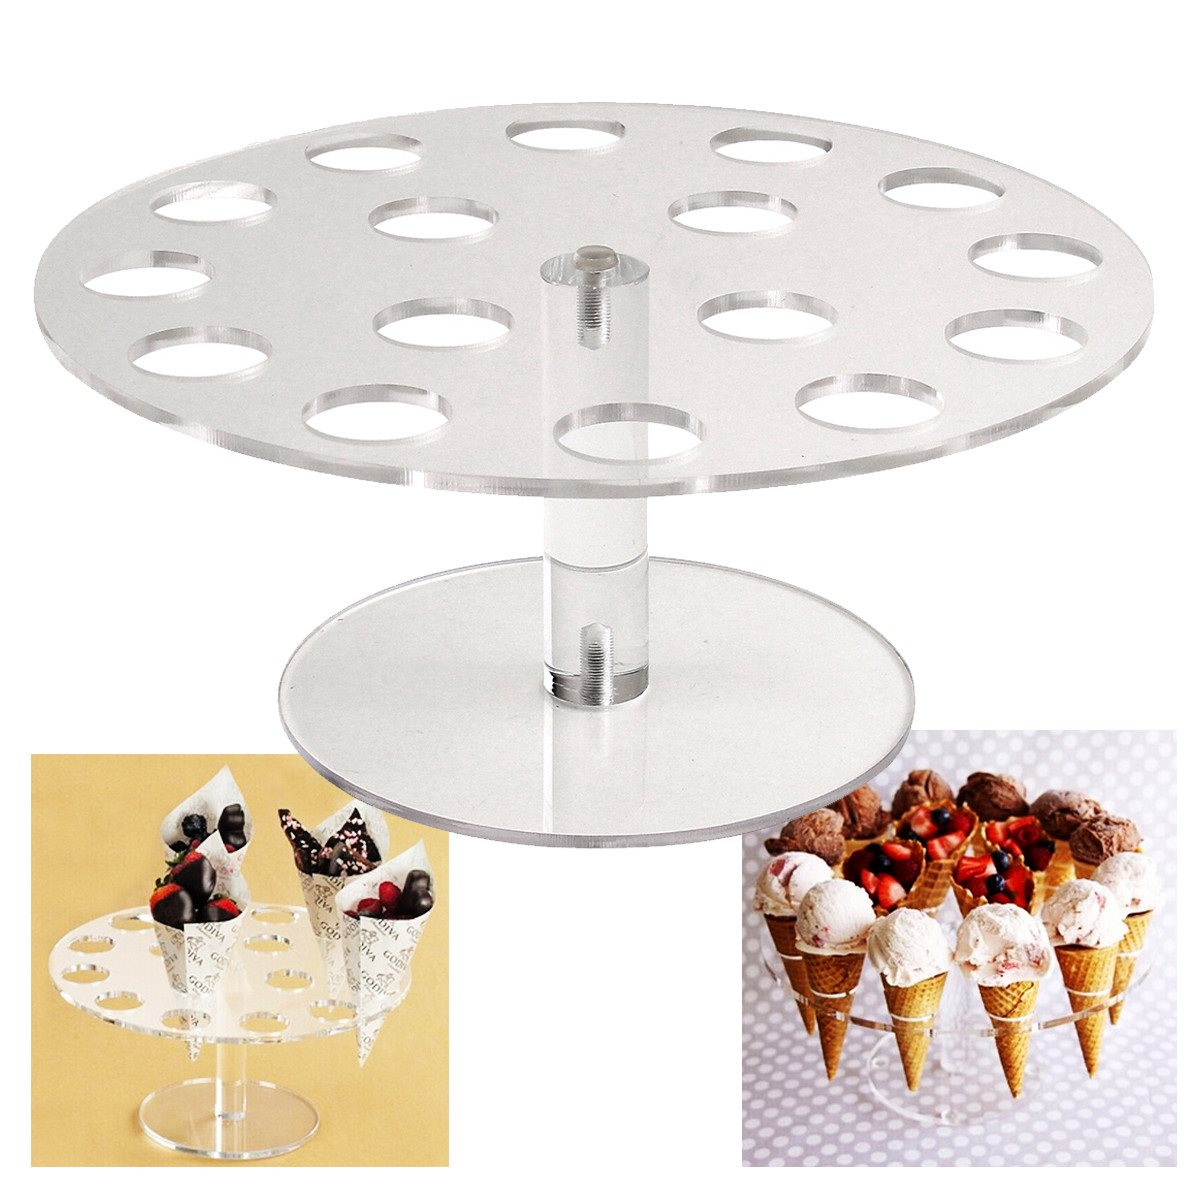 Ice Cream Cone Holder Cake Stand 16 Holds Weeding Party Buffet Display Shelf 250mm Kitchen Dining Bar Bakeware Stands